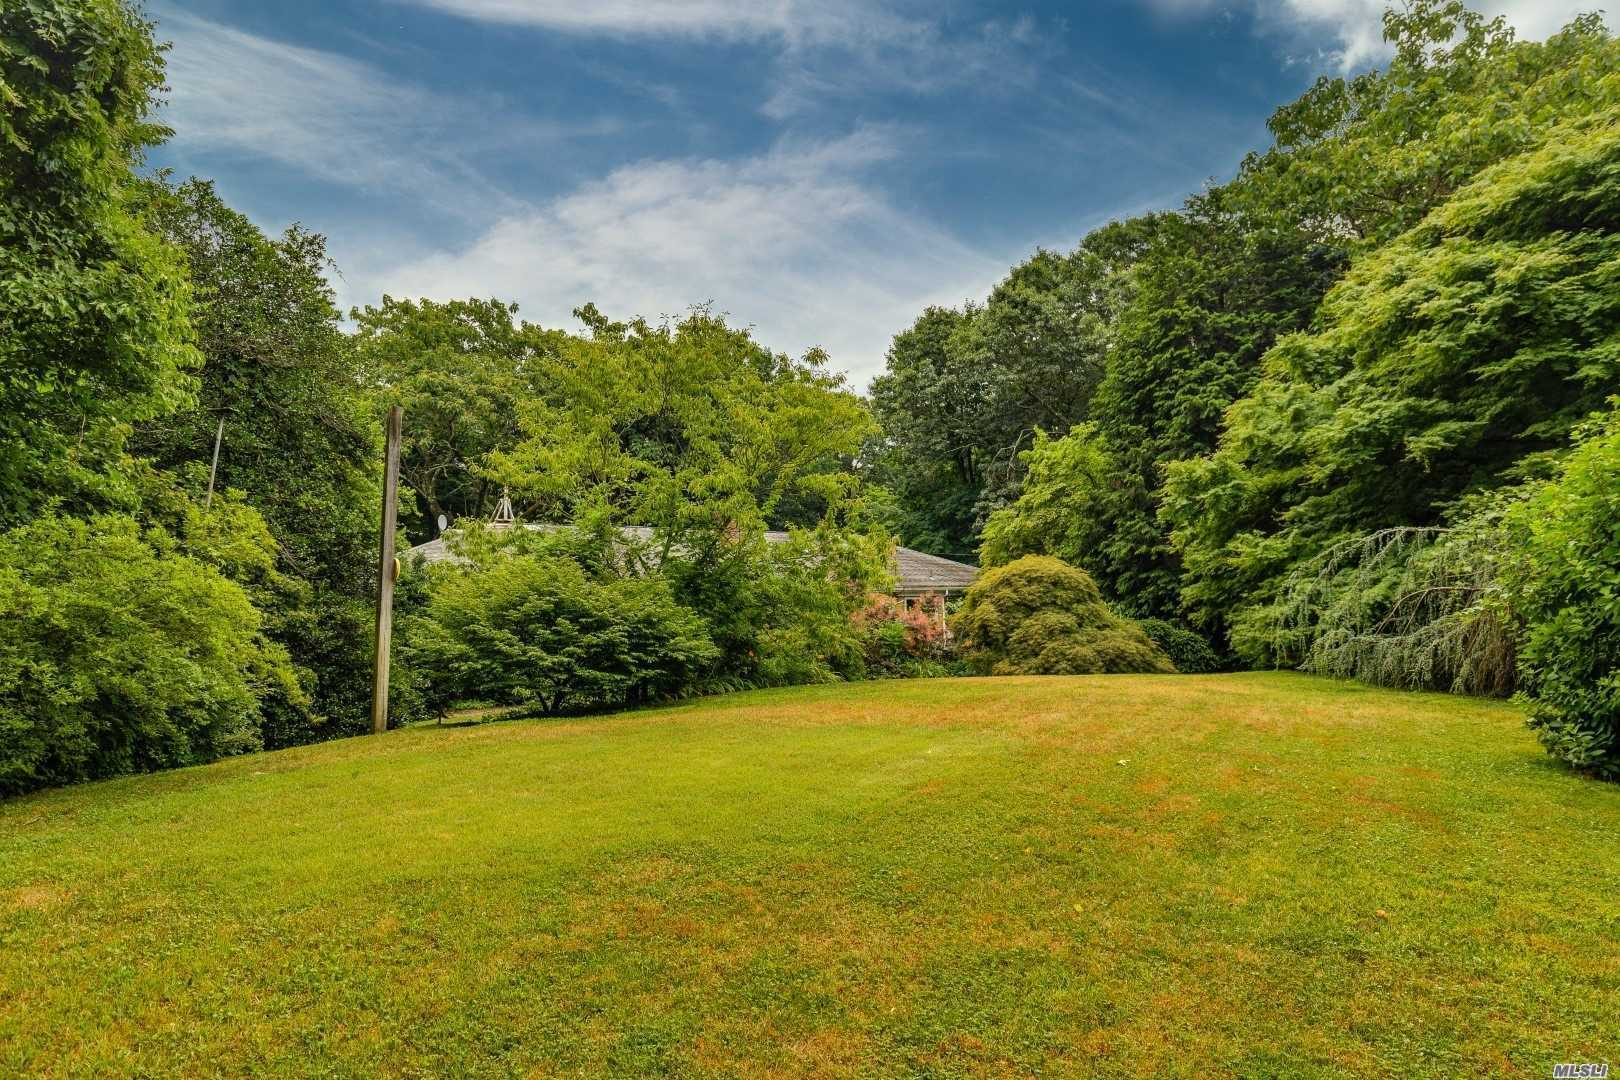 Situated In One Of The Most Sought After Oyster Bay Cove Communities On Over Two Lush & Beautiful Acres Sprawling 4 Bedroom Ranch W/ 2571 Sq Ft Of Endless Possibilities, Hardwood Floors Throughout, Walk Out Basement, Beach & Mooring Rights